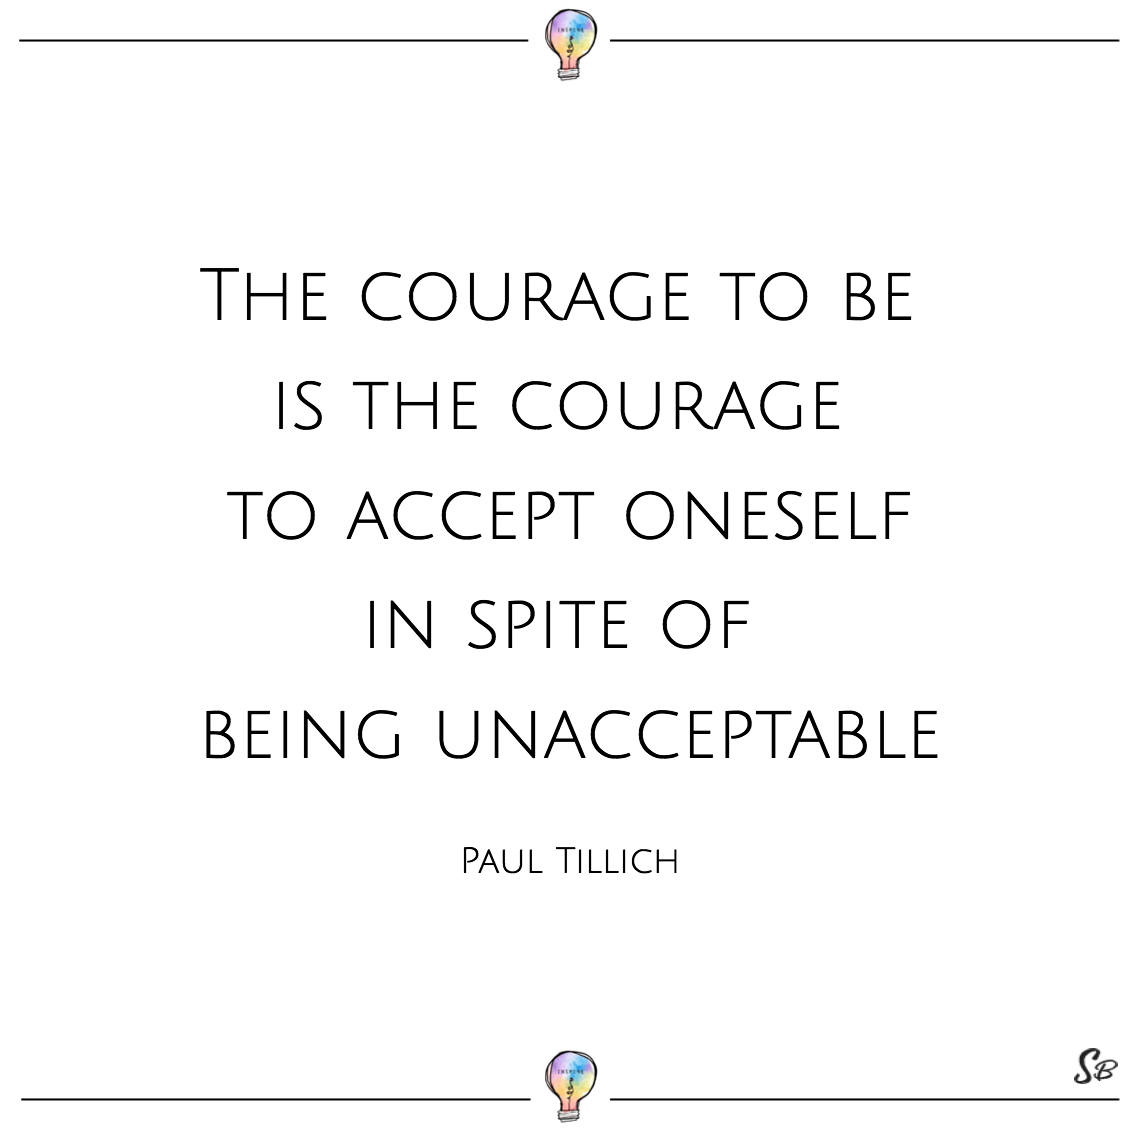 The courage to be is the courage to accept oneself in spite of being unacceptable paul tillich